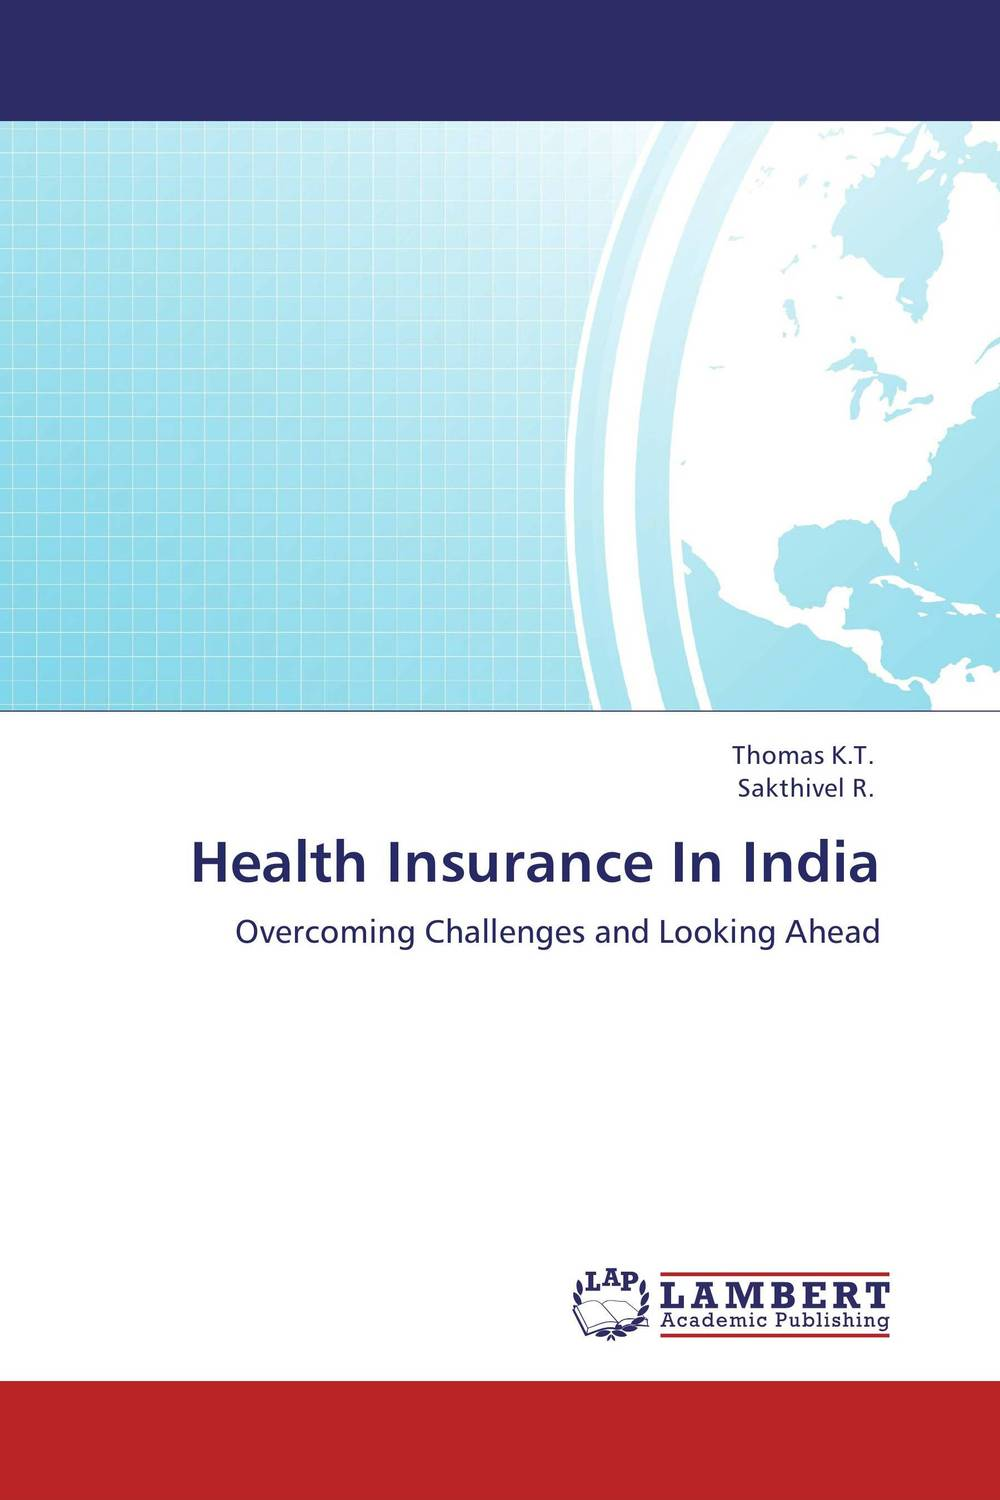 Health Insurance In India prostate health devices is prostate removal prostatitis mainly for the prostate health and prostatitis health capsule